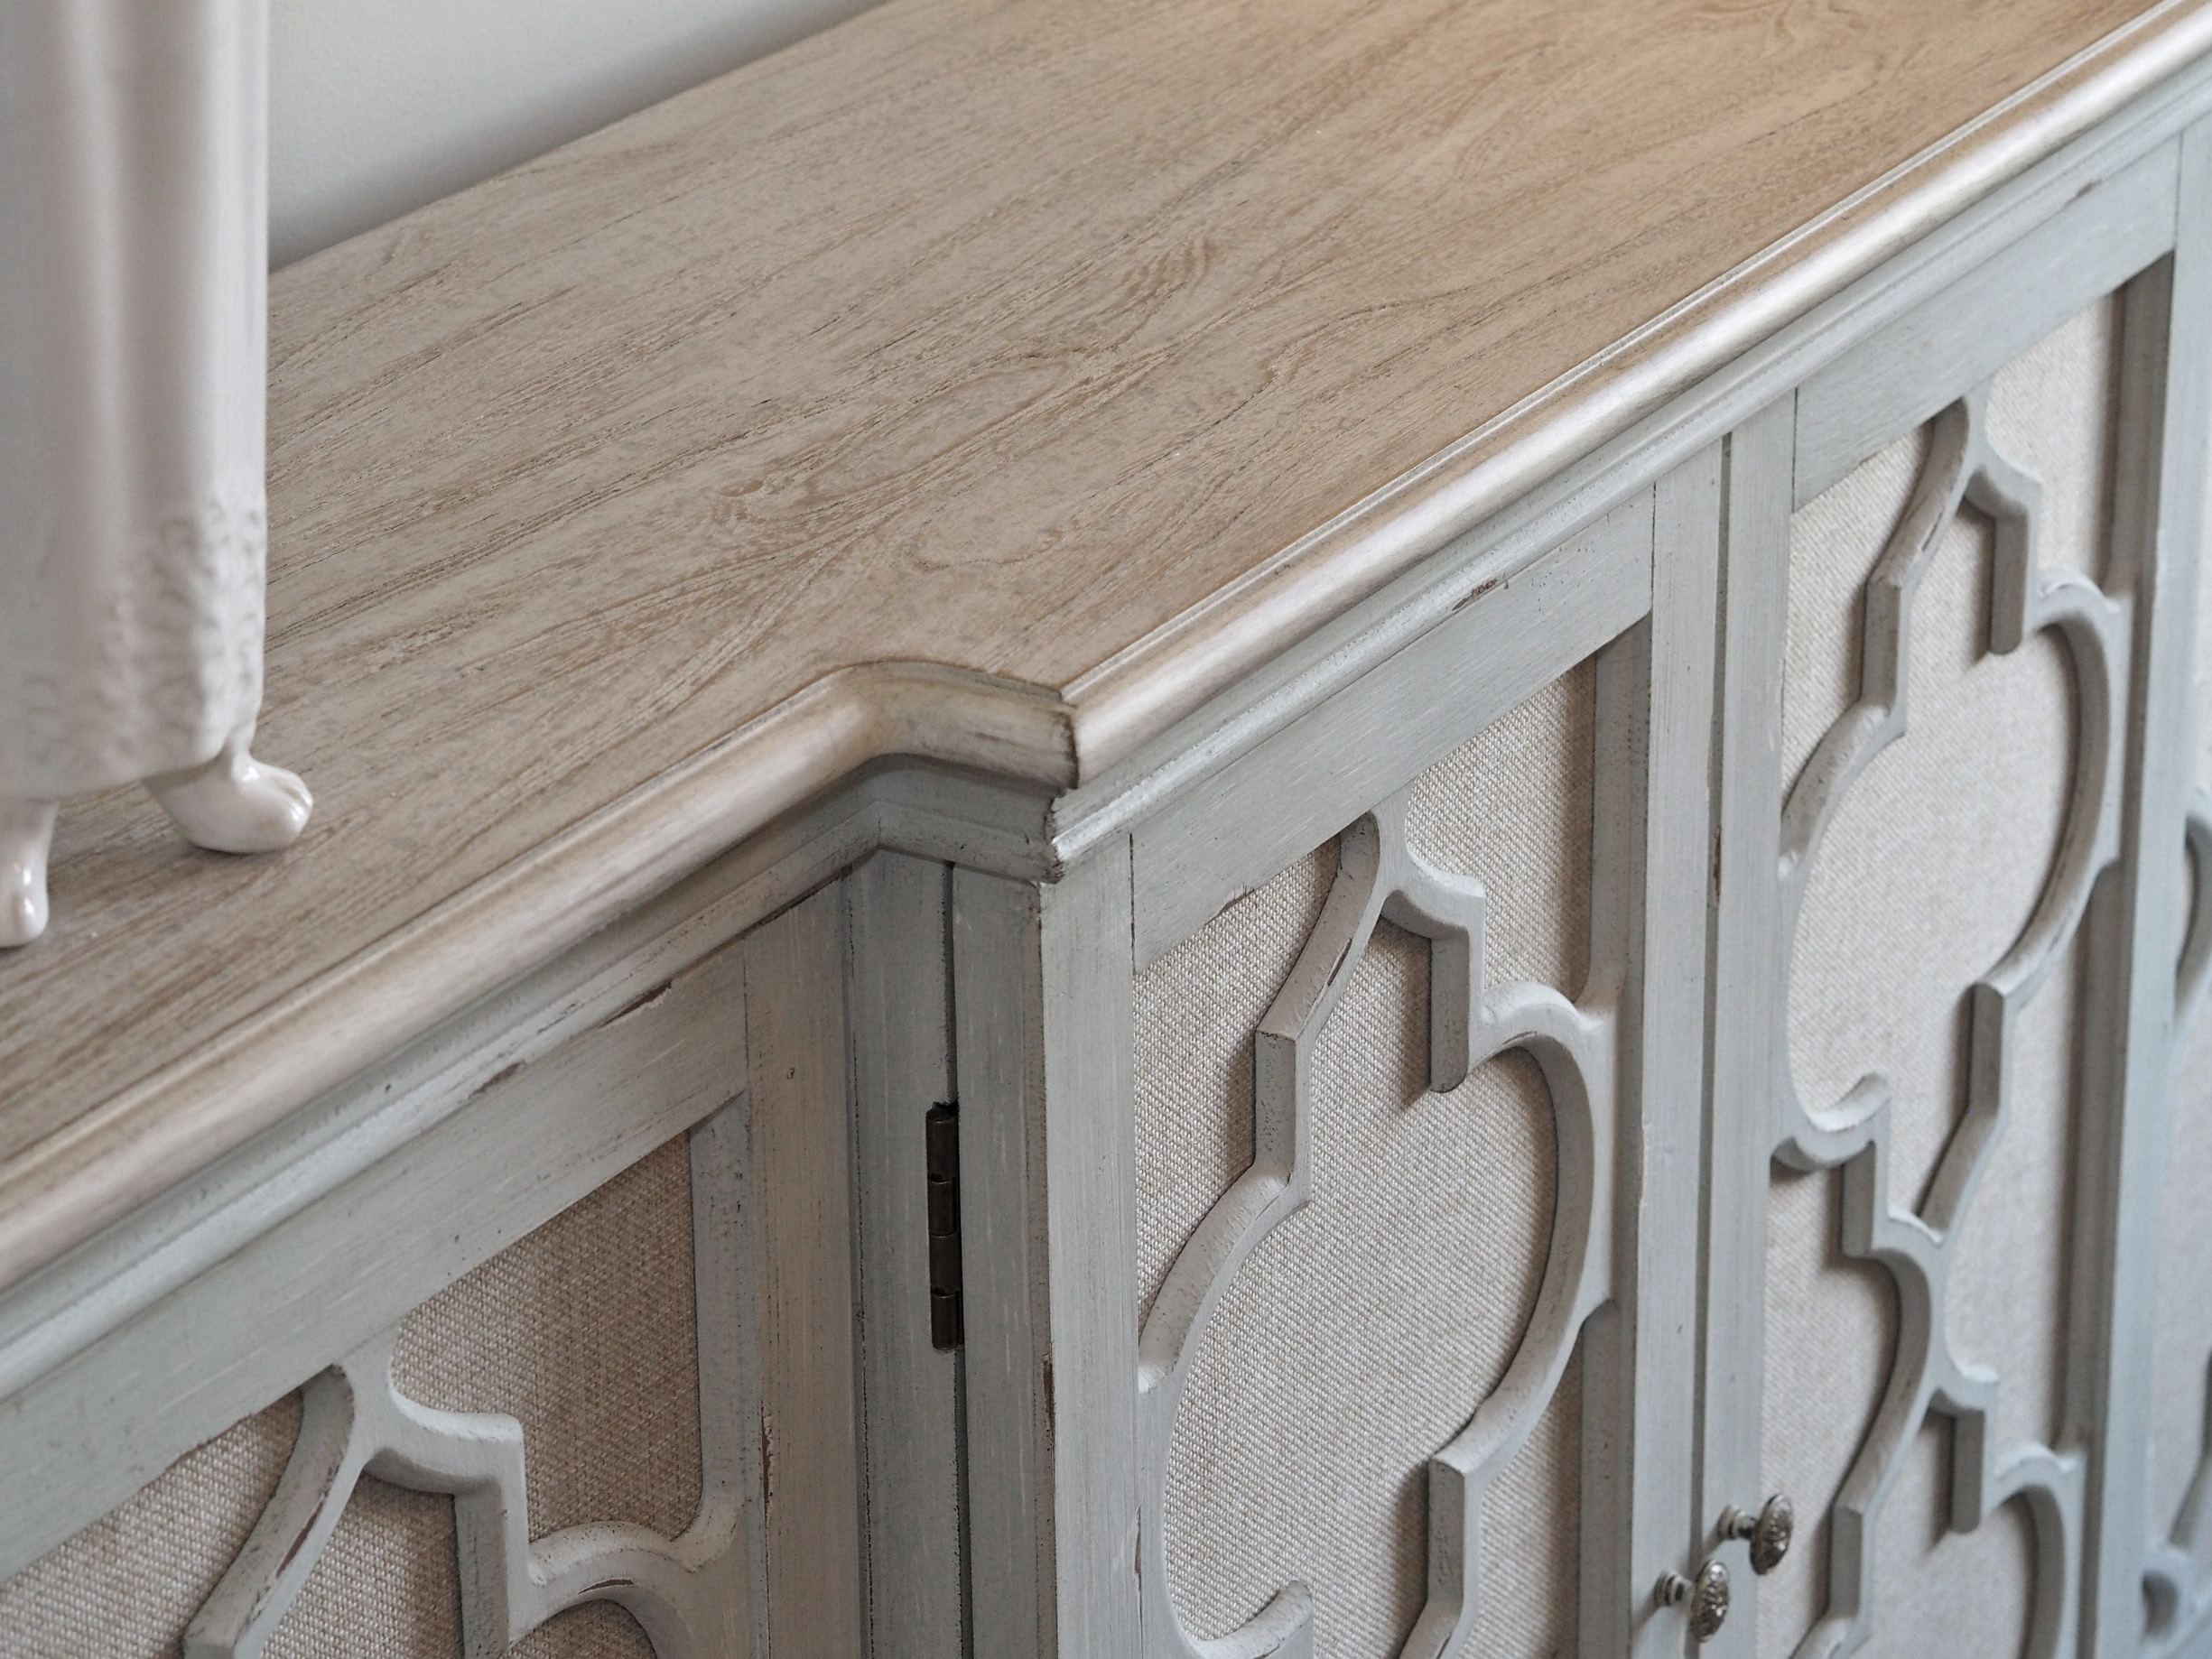 Close-up of the buffet to show details of the fabric front panels and the top.